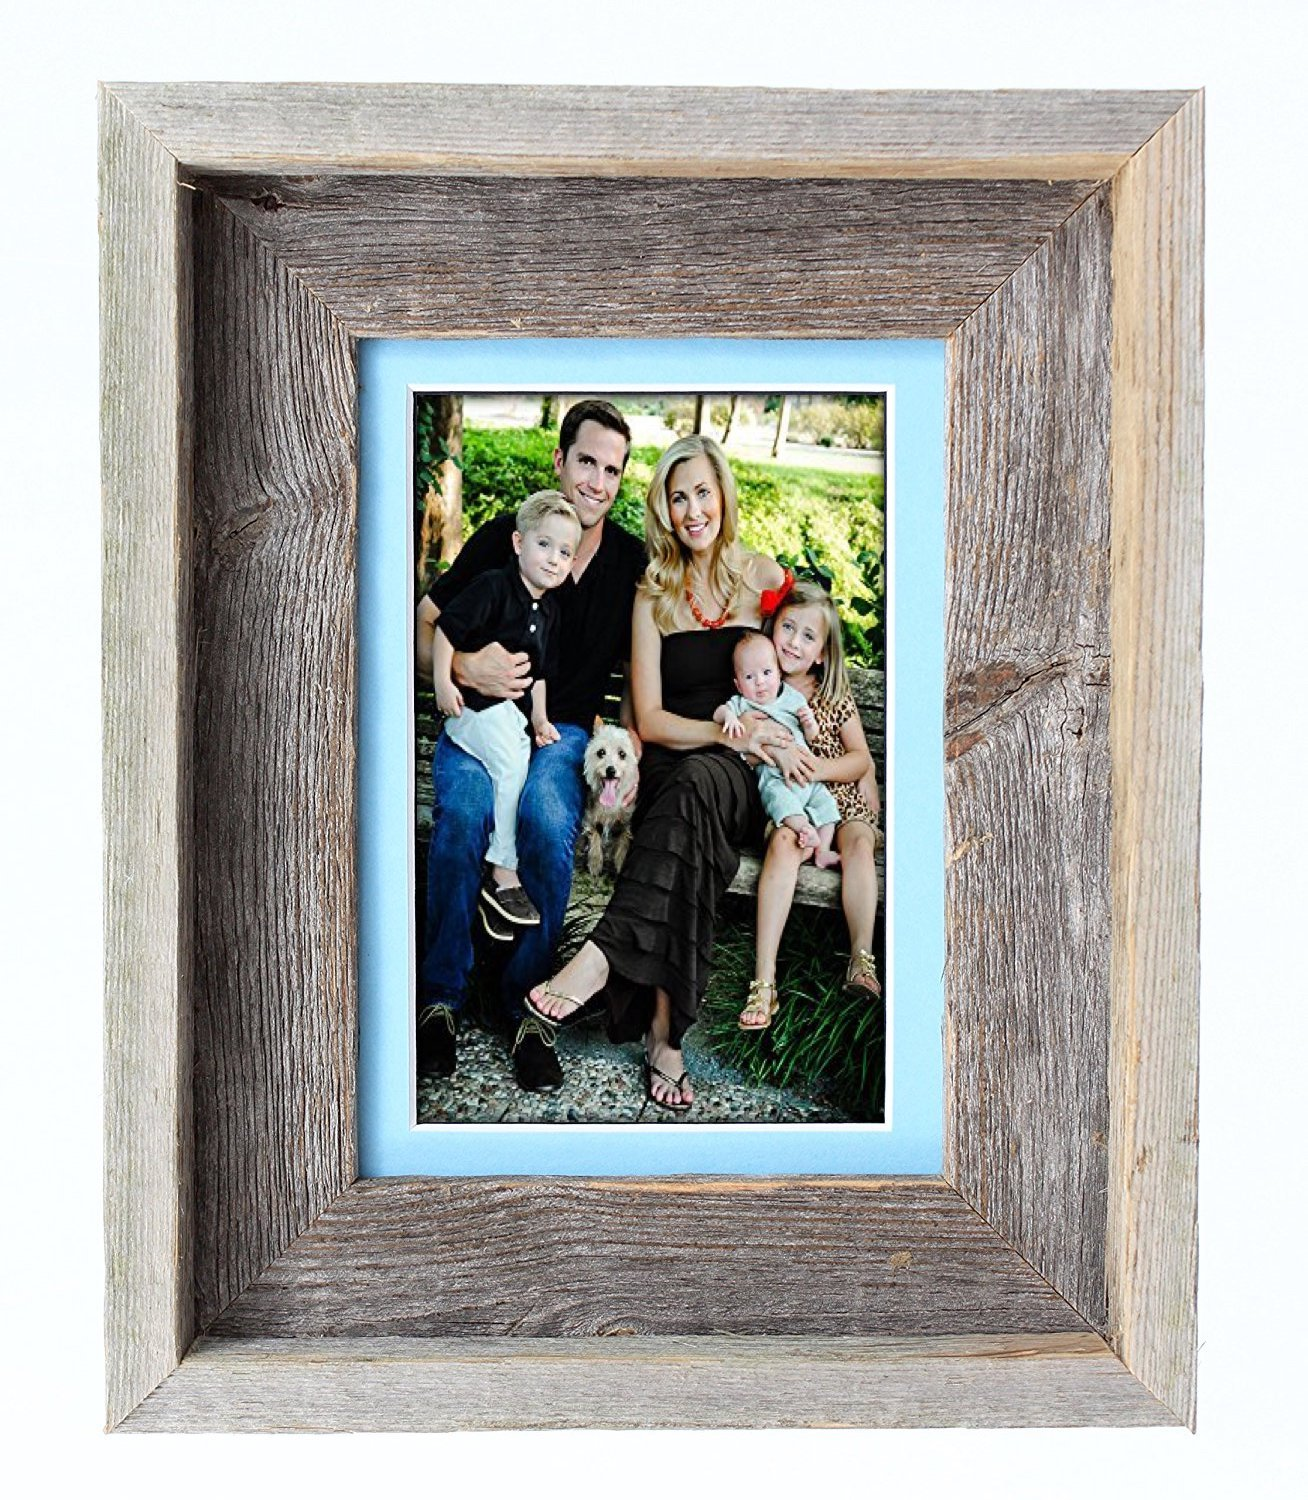 Aqua 4x6 BarnwoodUSA 16 by 20 Inch Signature Picture Frame Matted for 11 by 14 Inch Photos- 100% Reclaimed Wood, Burlap Mat